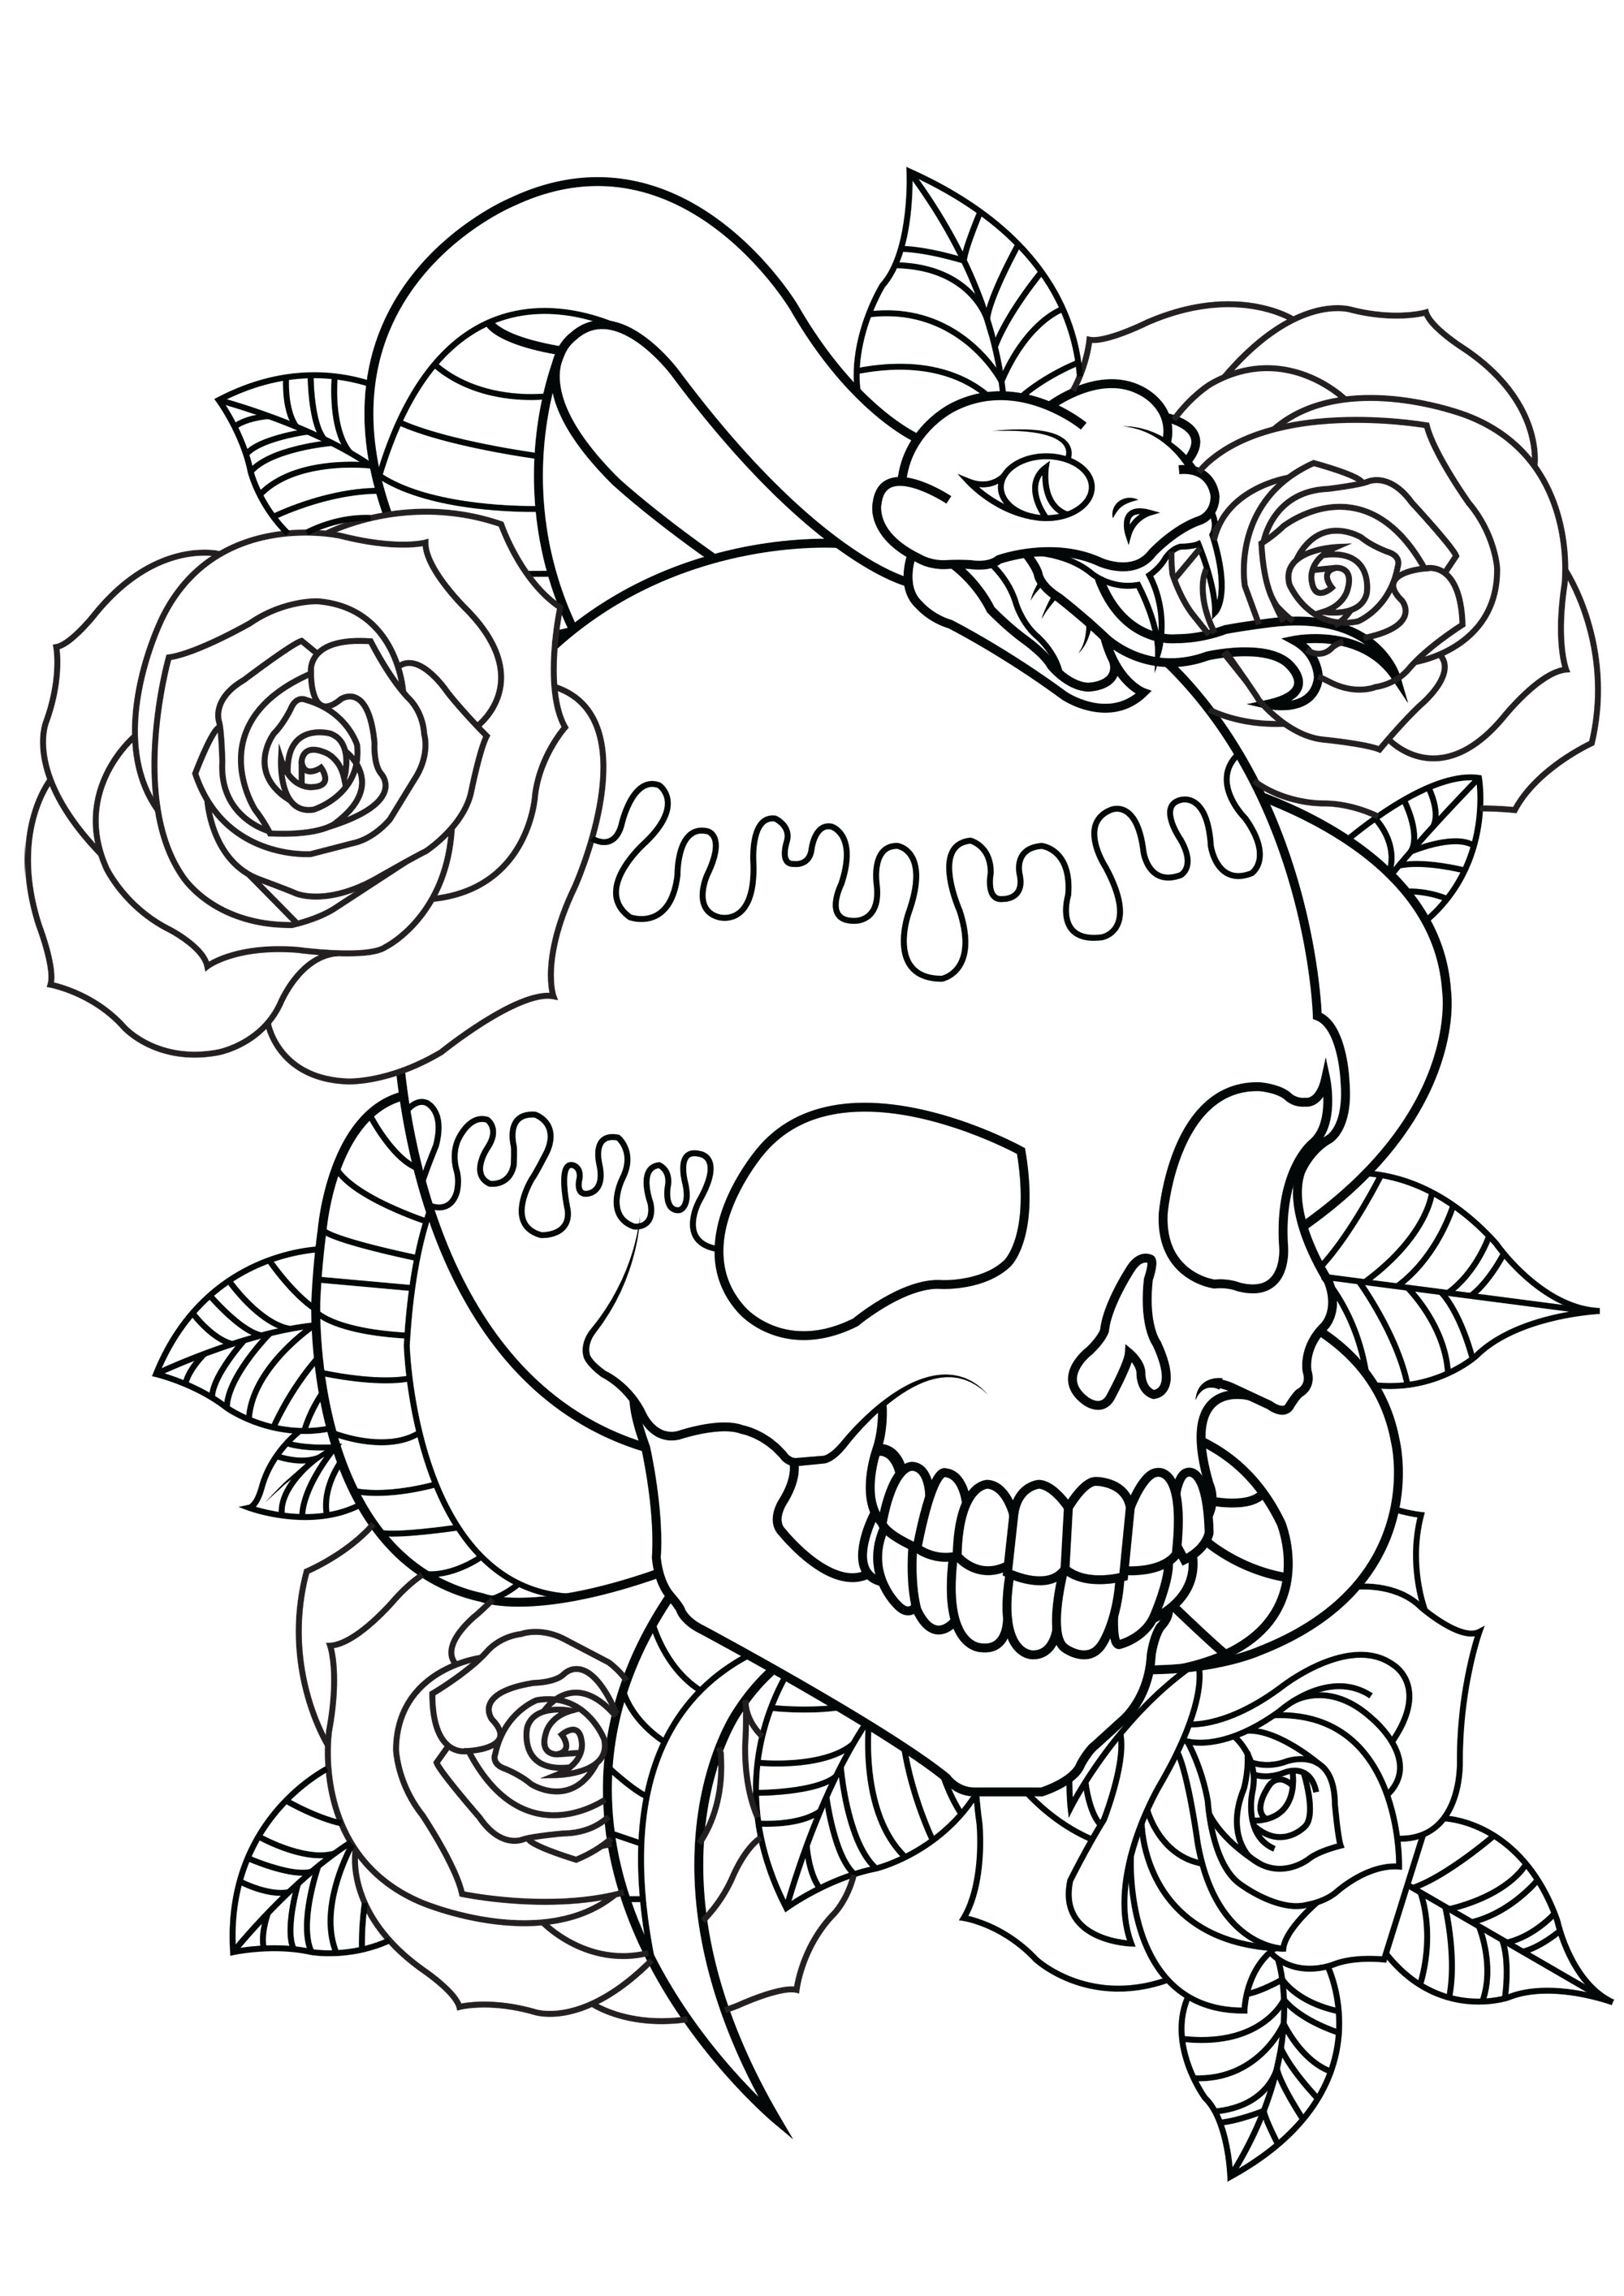 Tattoo with skull, snake and roses